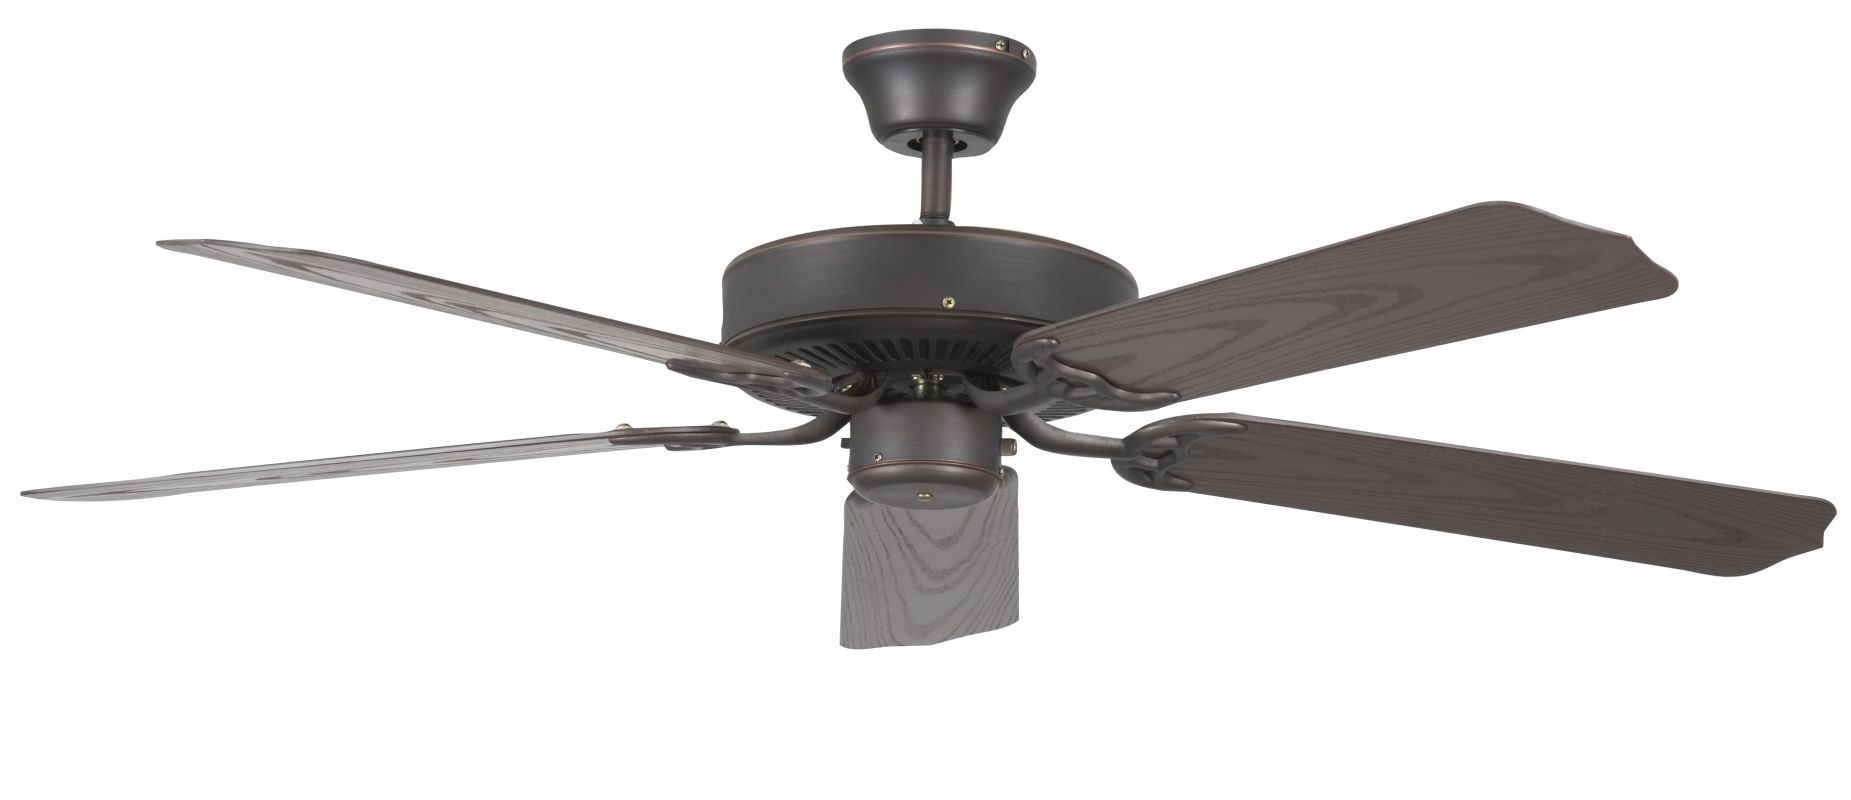 "Concord 52POR5 Indoor/Outdoor 5 Blade 52"" Ceiling Fan with Blades from"